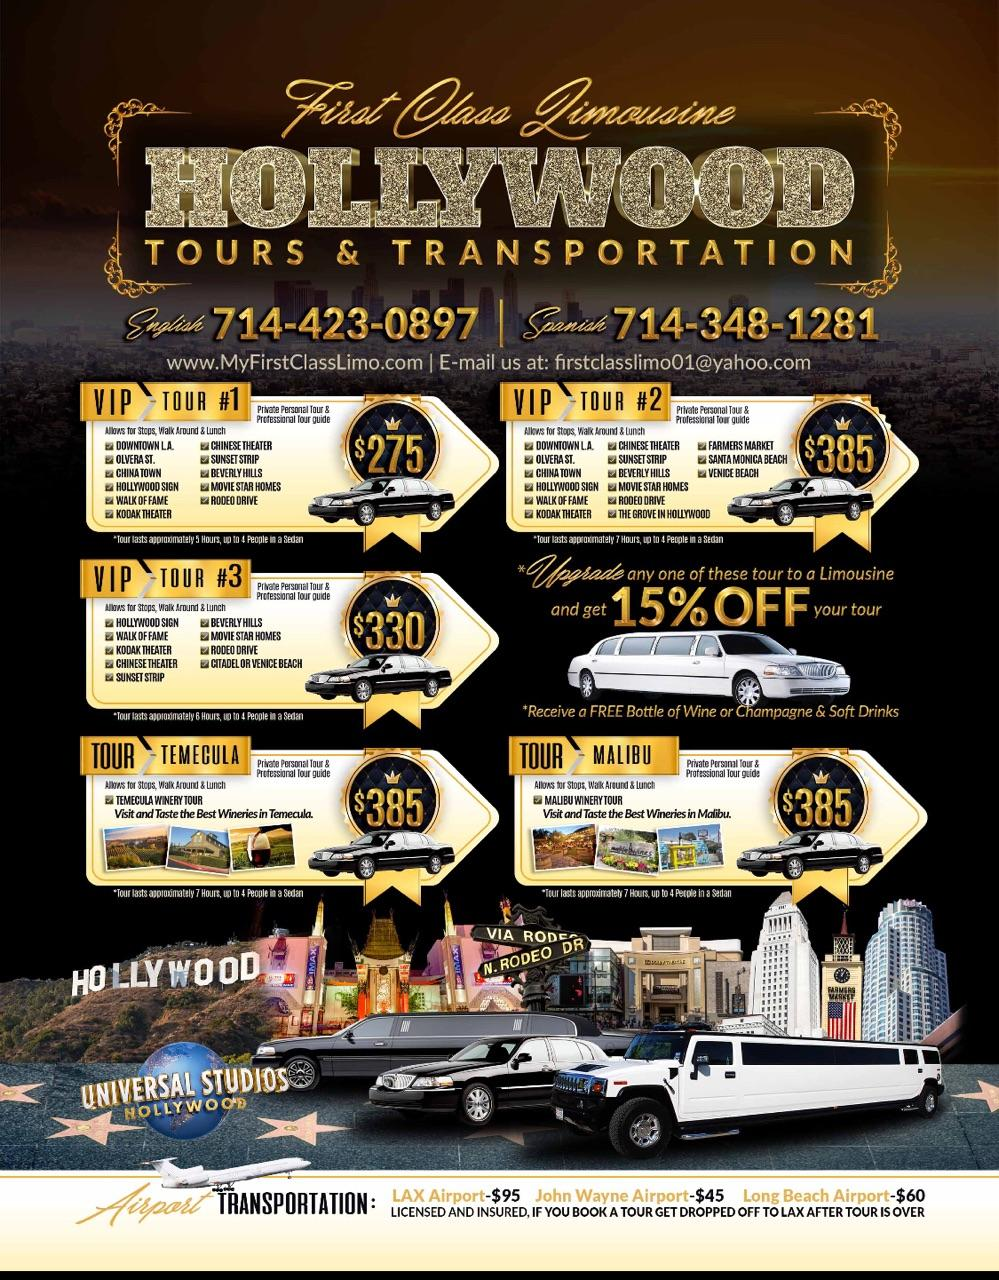 https://www.firstclasslimotours.com/take-a-tour-limousine-party-bus-anaheim-orange-county/